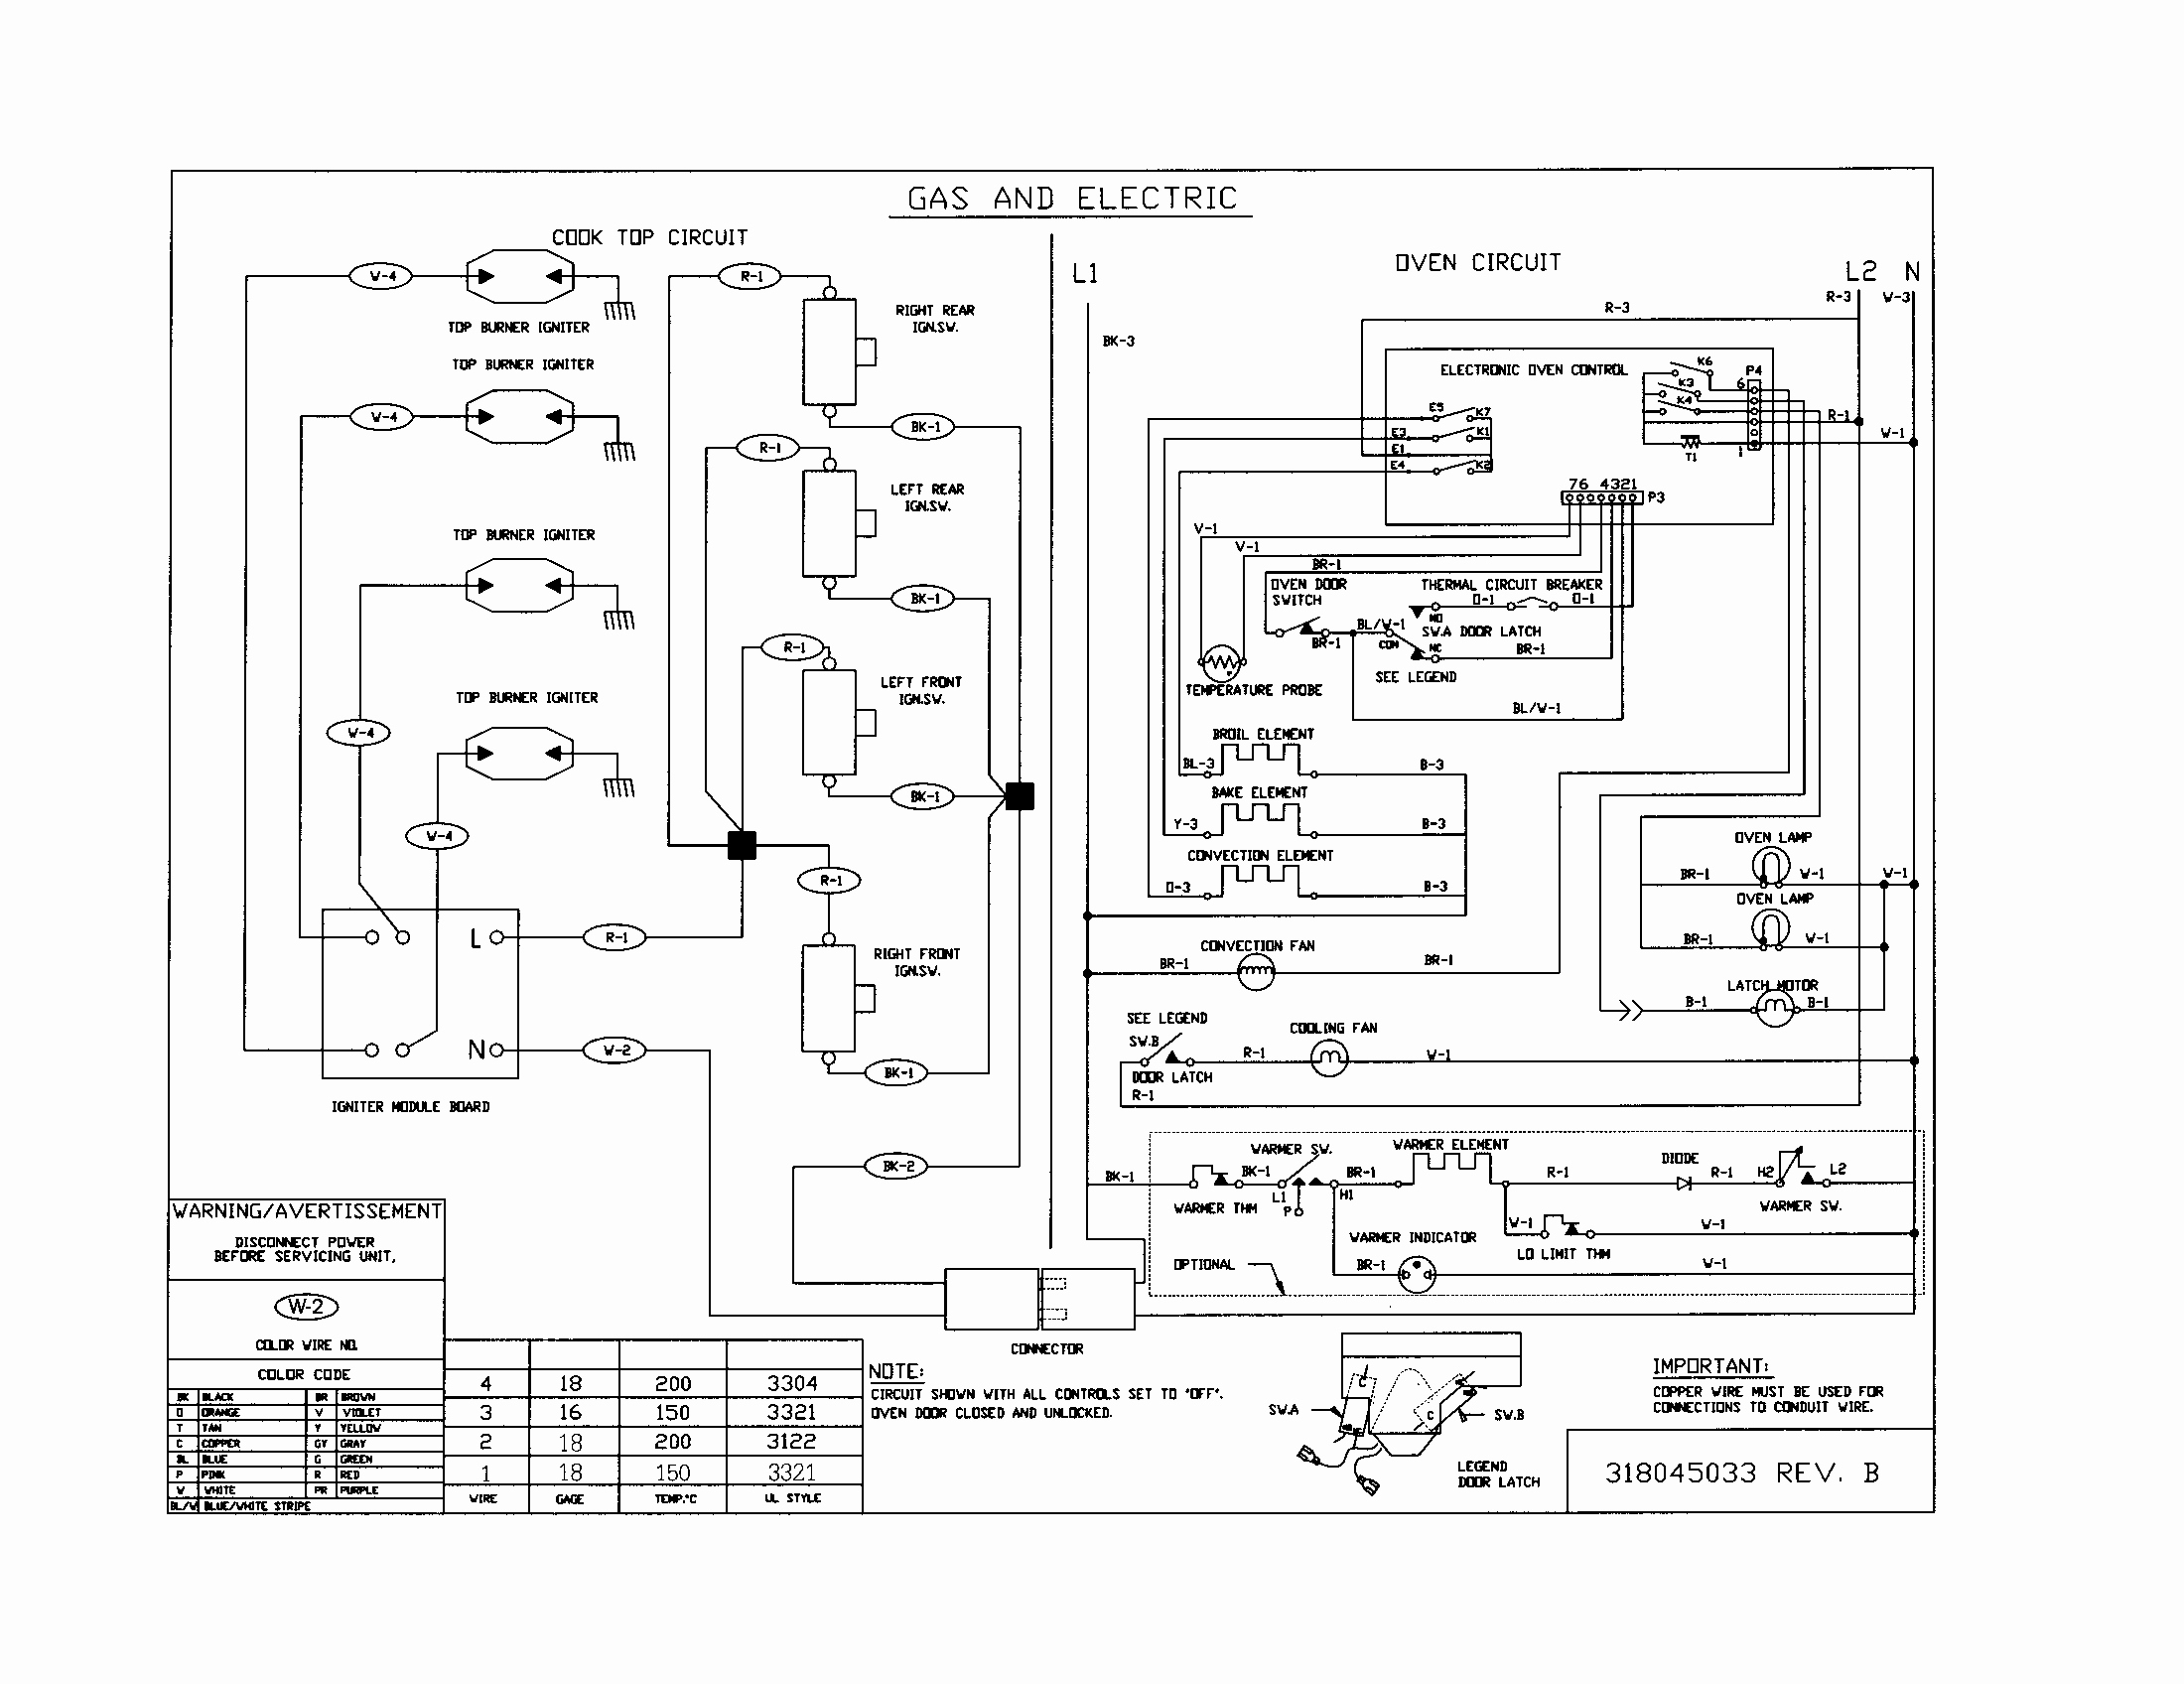 Kenmore Dryer Wiring Diagram 1997 Guide And Troubleshooting Of Whirlpool Gas For 97 Cabrio Auto Electrical Rh Wiringdiagramoften Herokuapp Com 110 Schematic Model 73952101